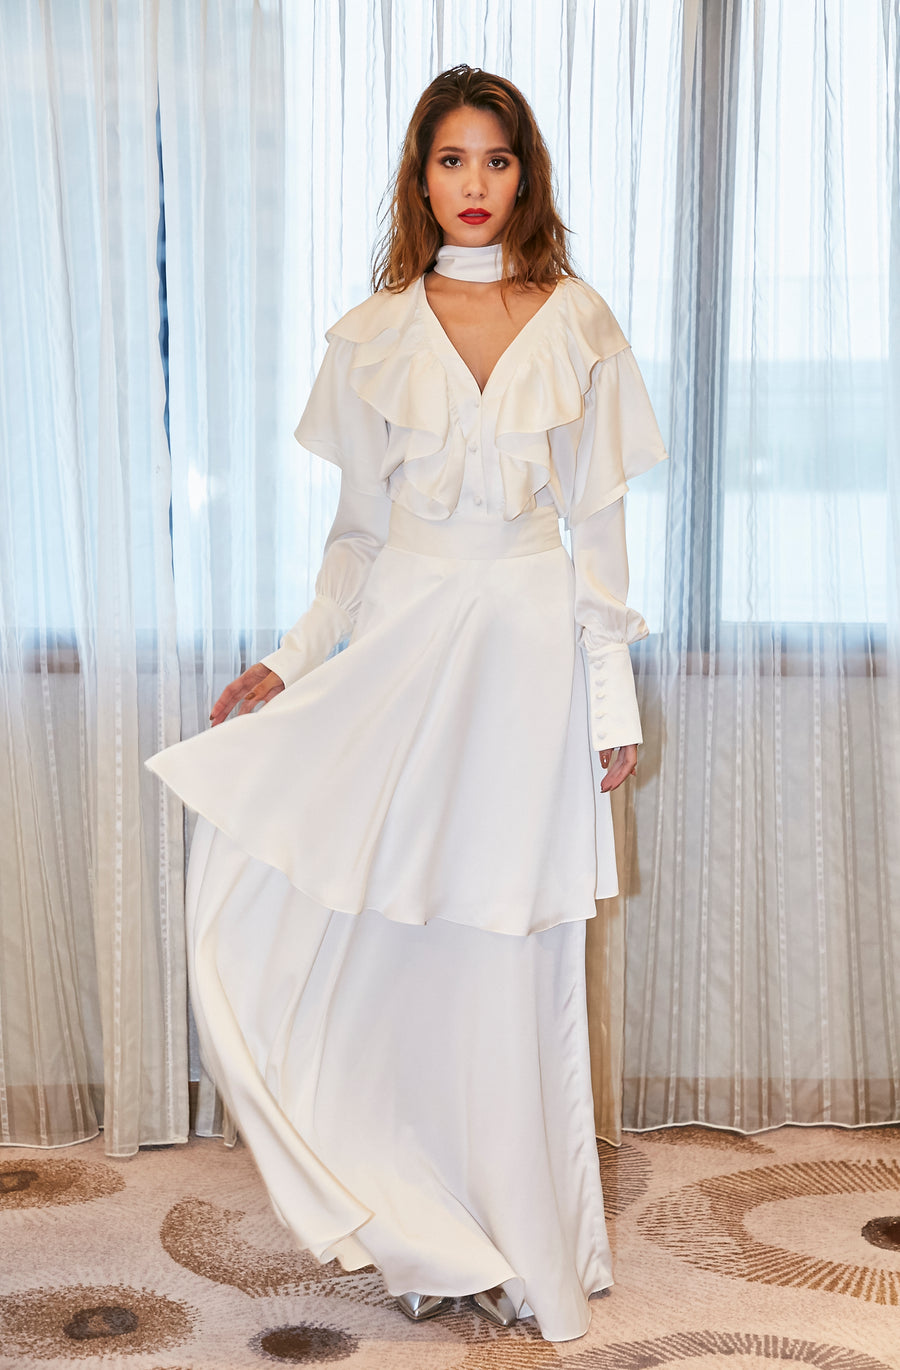 White T-Shirt/White Maxi Skirt